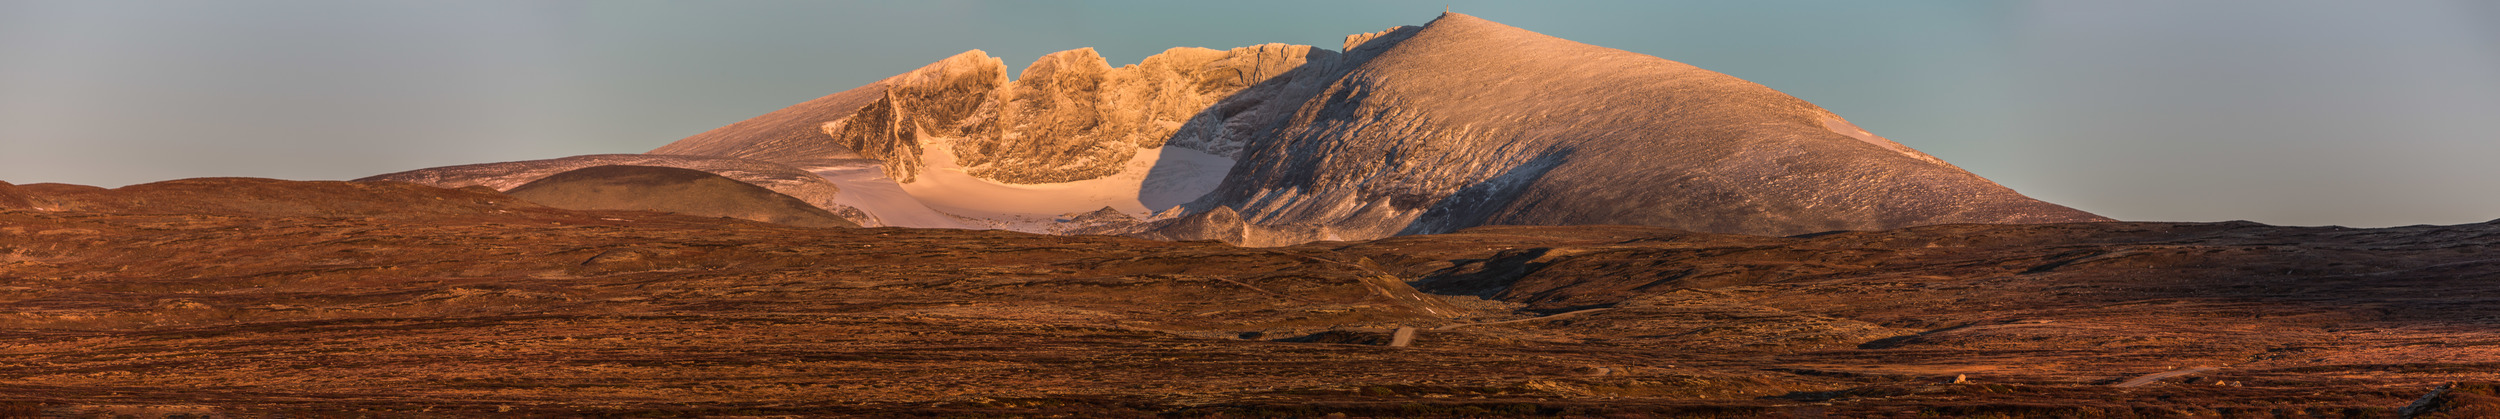 Snøhetta  mountain at  Dovrefjell in Norway .  This panoramic photo is put together by five images captured October 2 at sunrise. I went on my bike very early that morning in the dark on the remote road to find a location to take these shots. I knew the first snow was there on the mountain already and the combination with autumn colors was a very nice view.